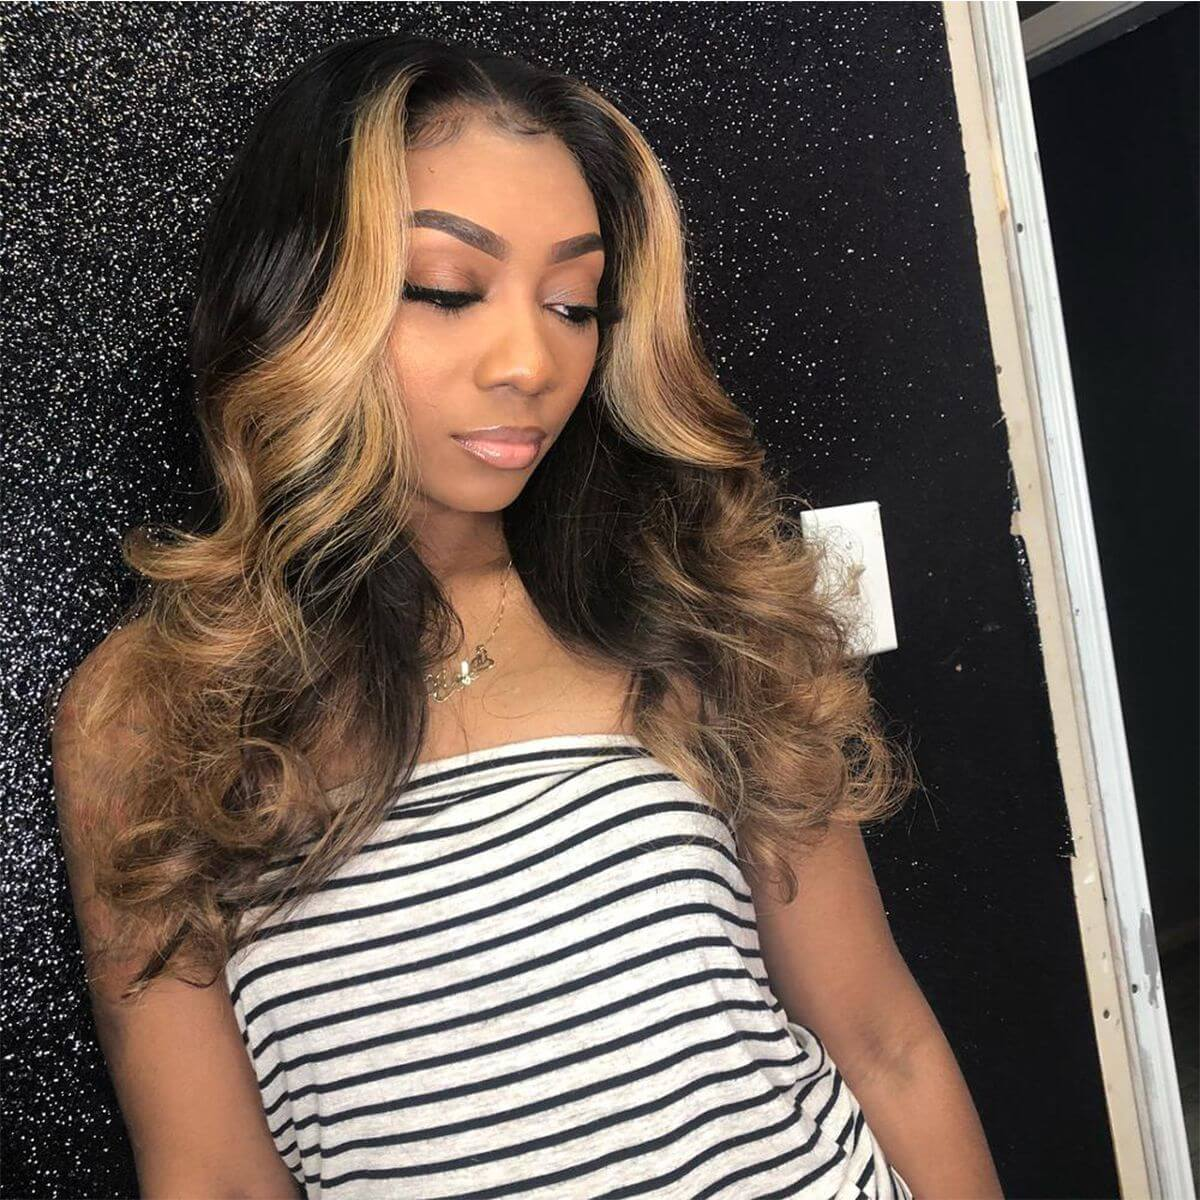 Ombre Body Wave Front Wig,1b 30 Body Front Wig,Ombre Body Front Wig,Highlighted Body Wave Lace Front Wigs,Ombre Brown Body Wave Wig,Ombre Body Wave Lace Front Wig,Cheap Ombre Brown Lace Front Wigs